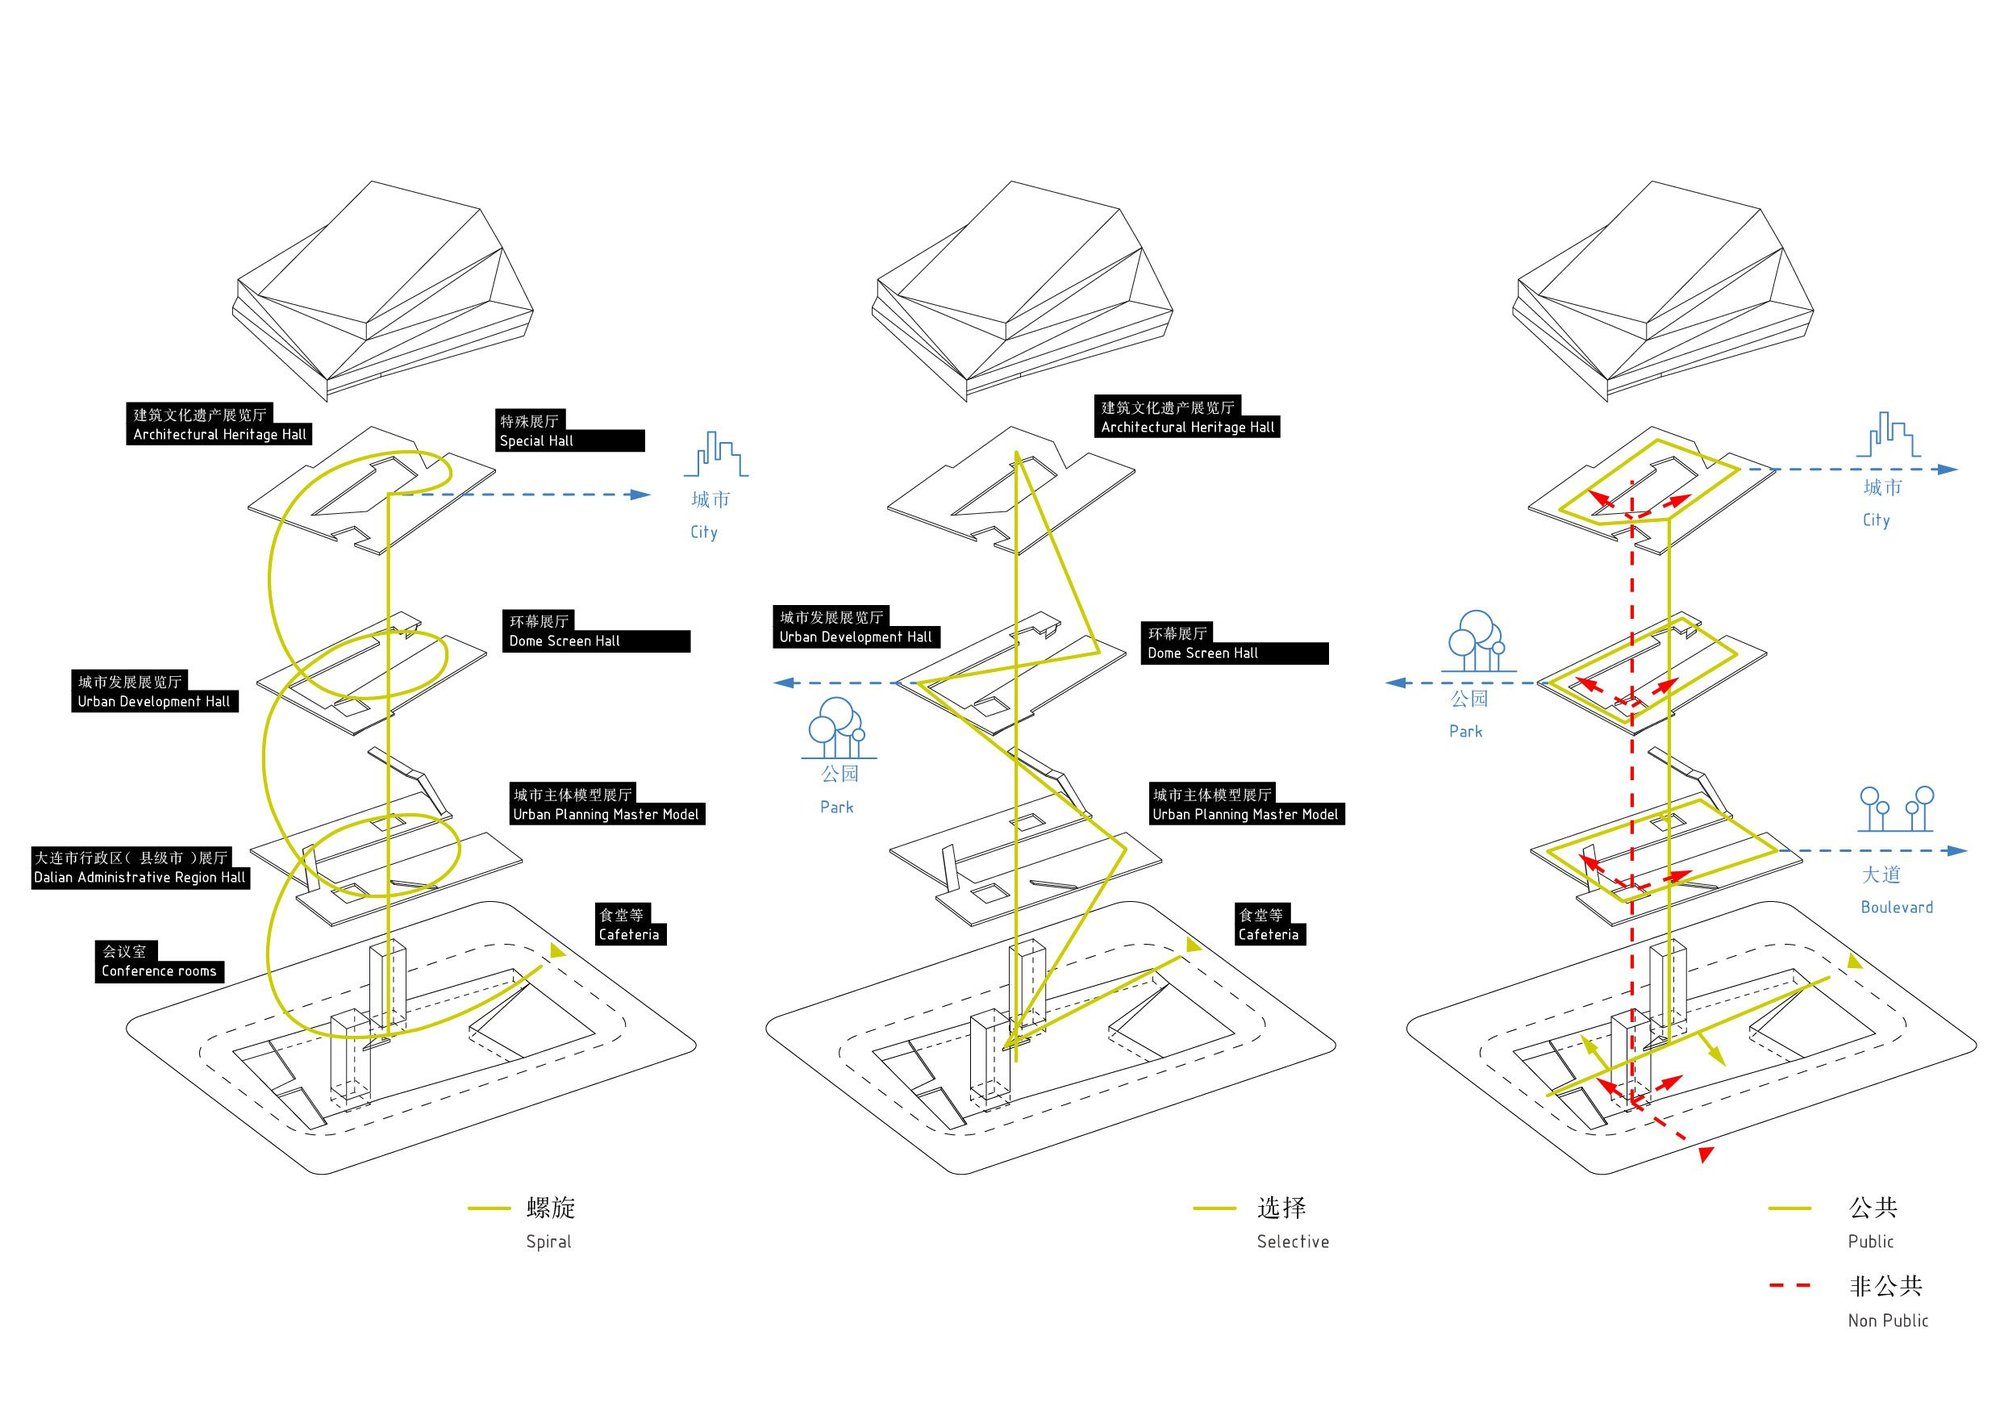 images urban planner in diagram blaupunkt wiring planning museum architects collective archdaily